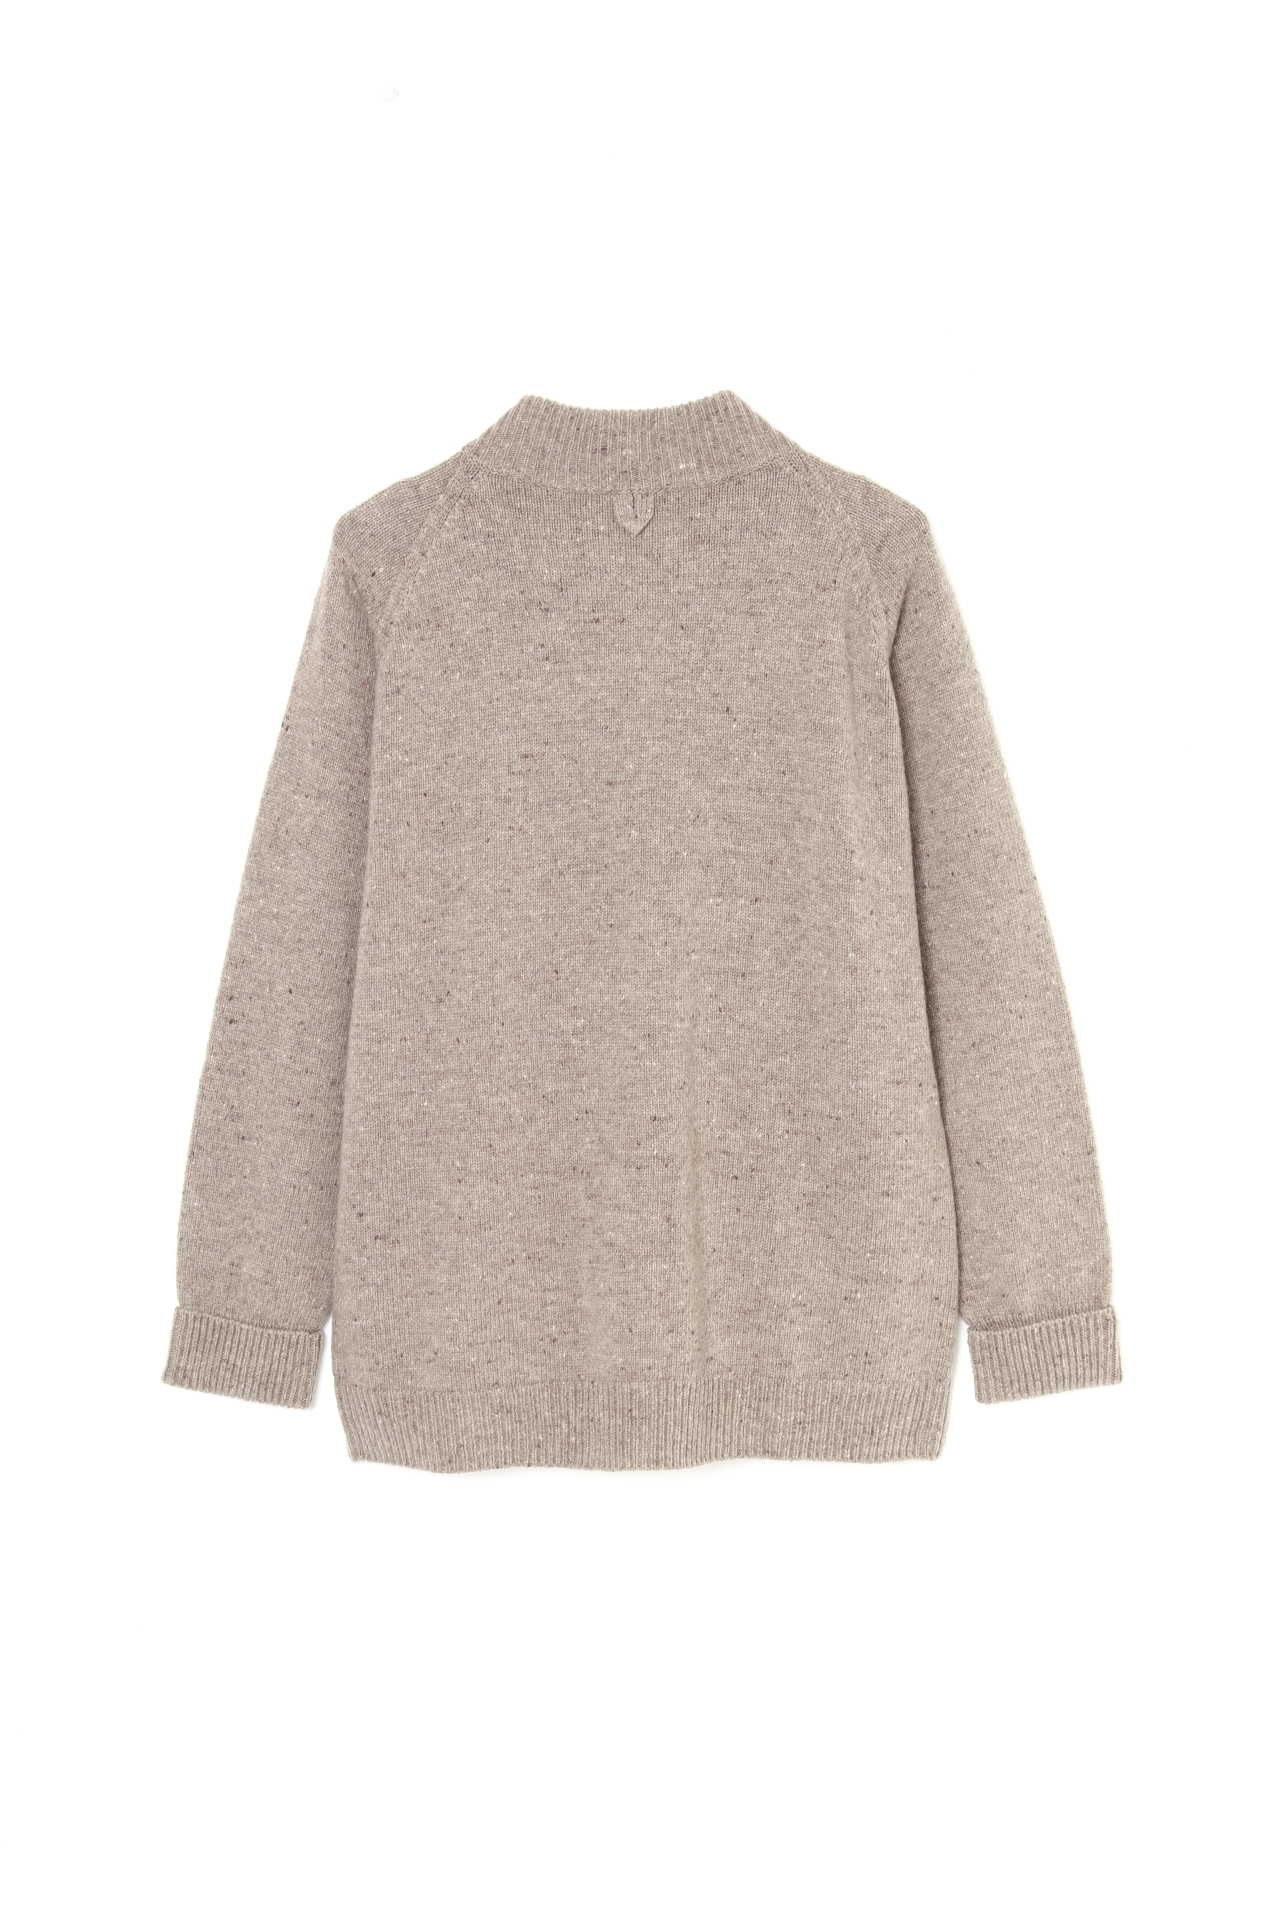 DONEGAL WOOL CASHMERE CARDIGAN5